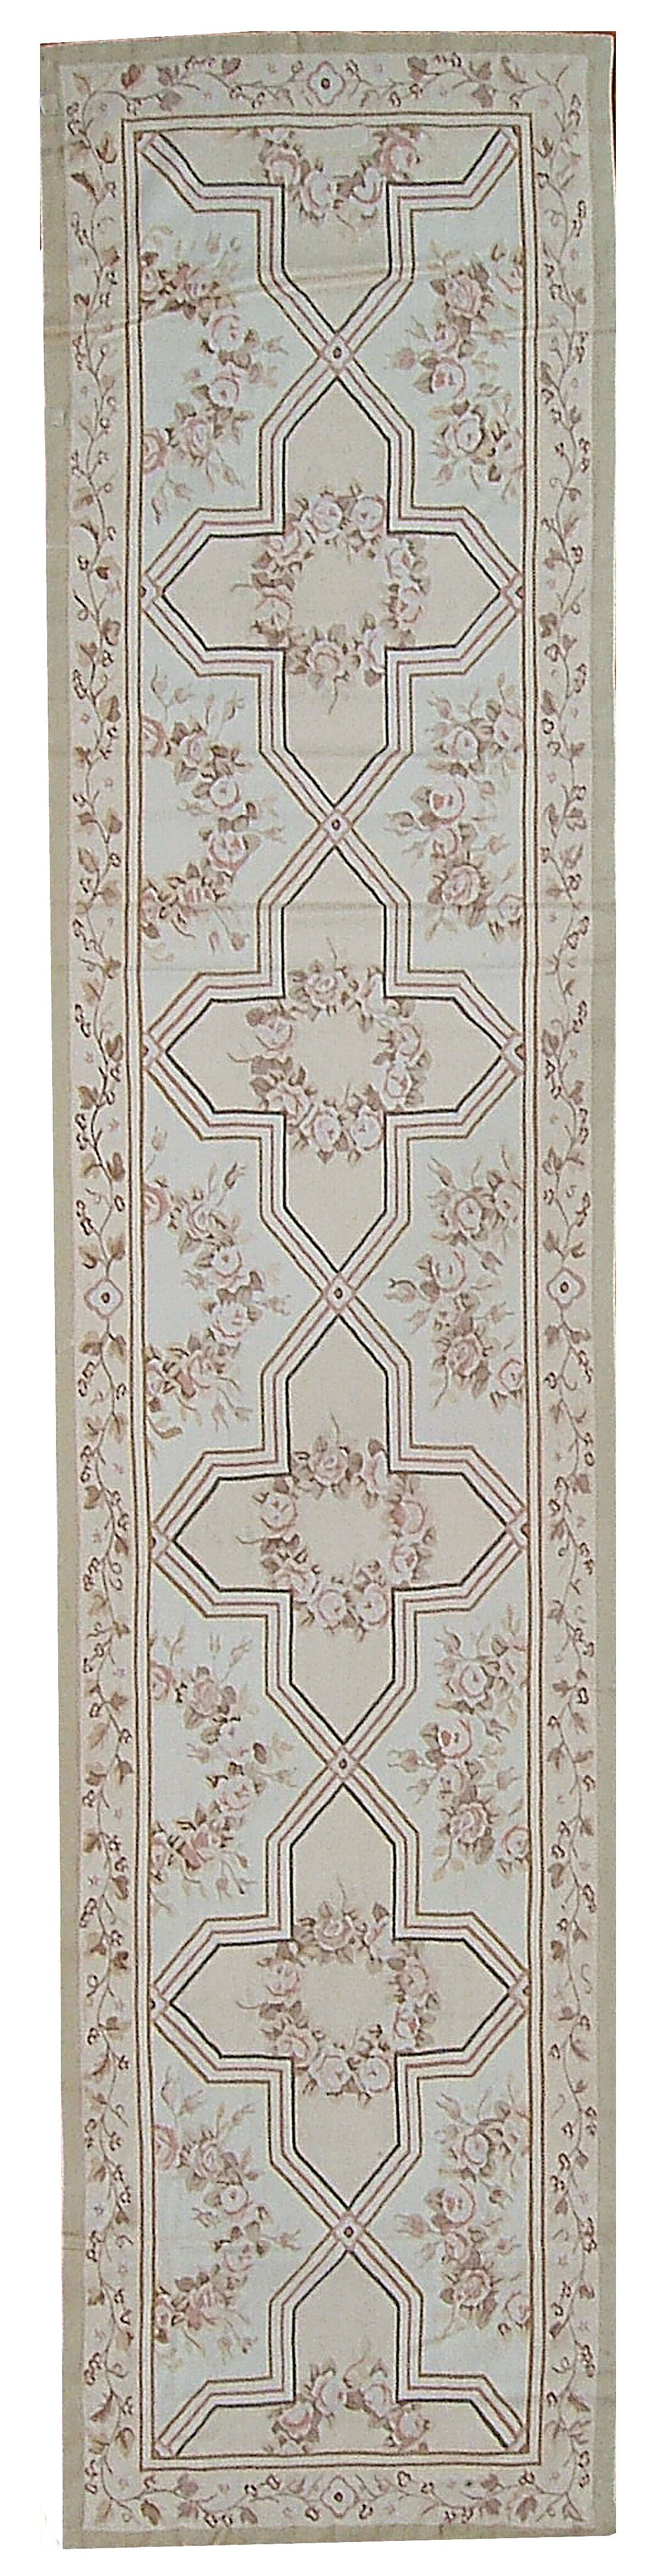 Aubusson Hand-Woven Wool Brown/Gray Area Rug Rug Size: Runner 2'1 x 12'3